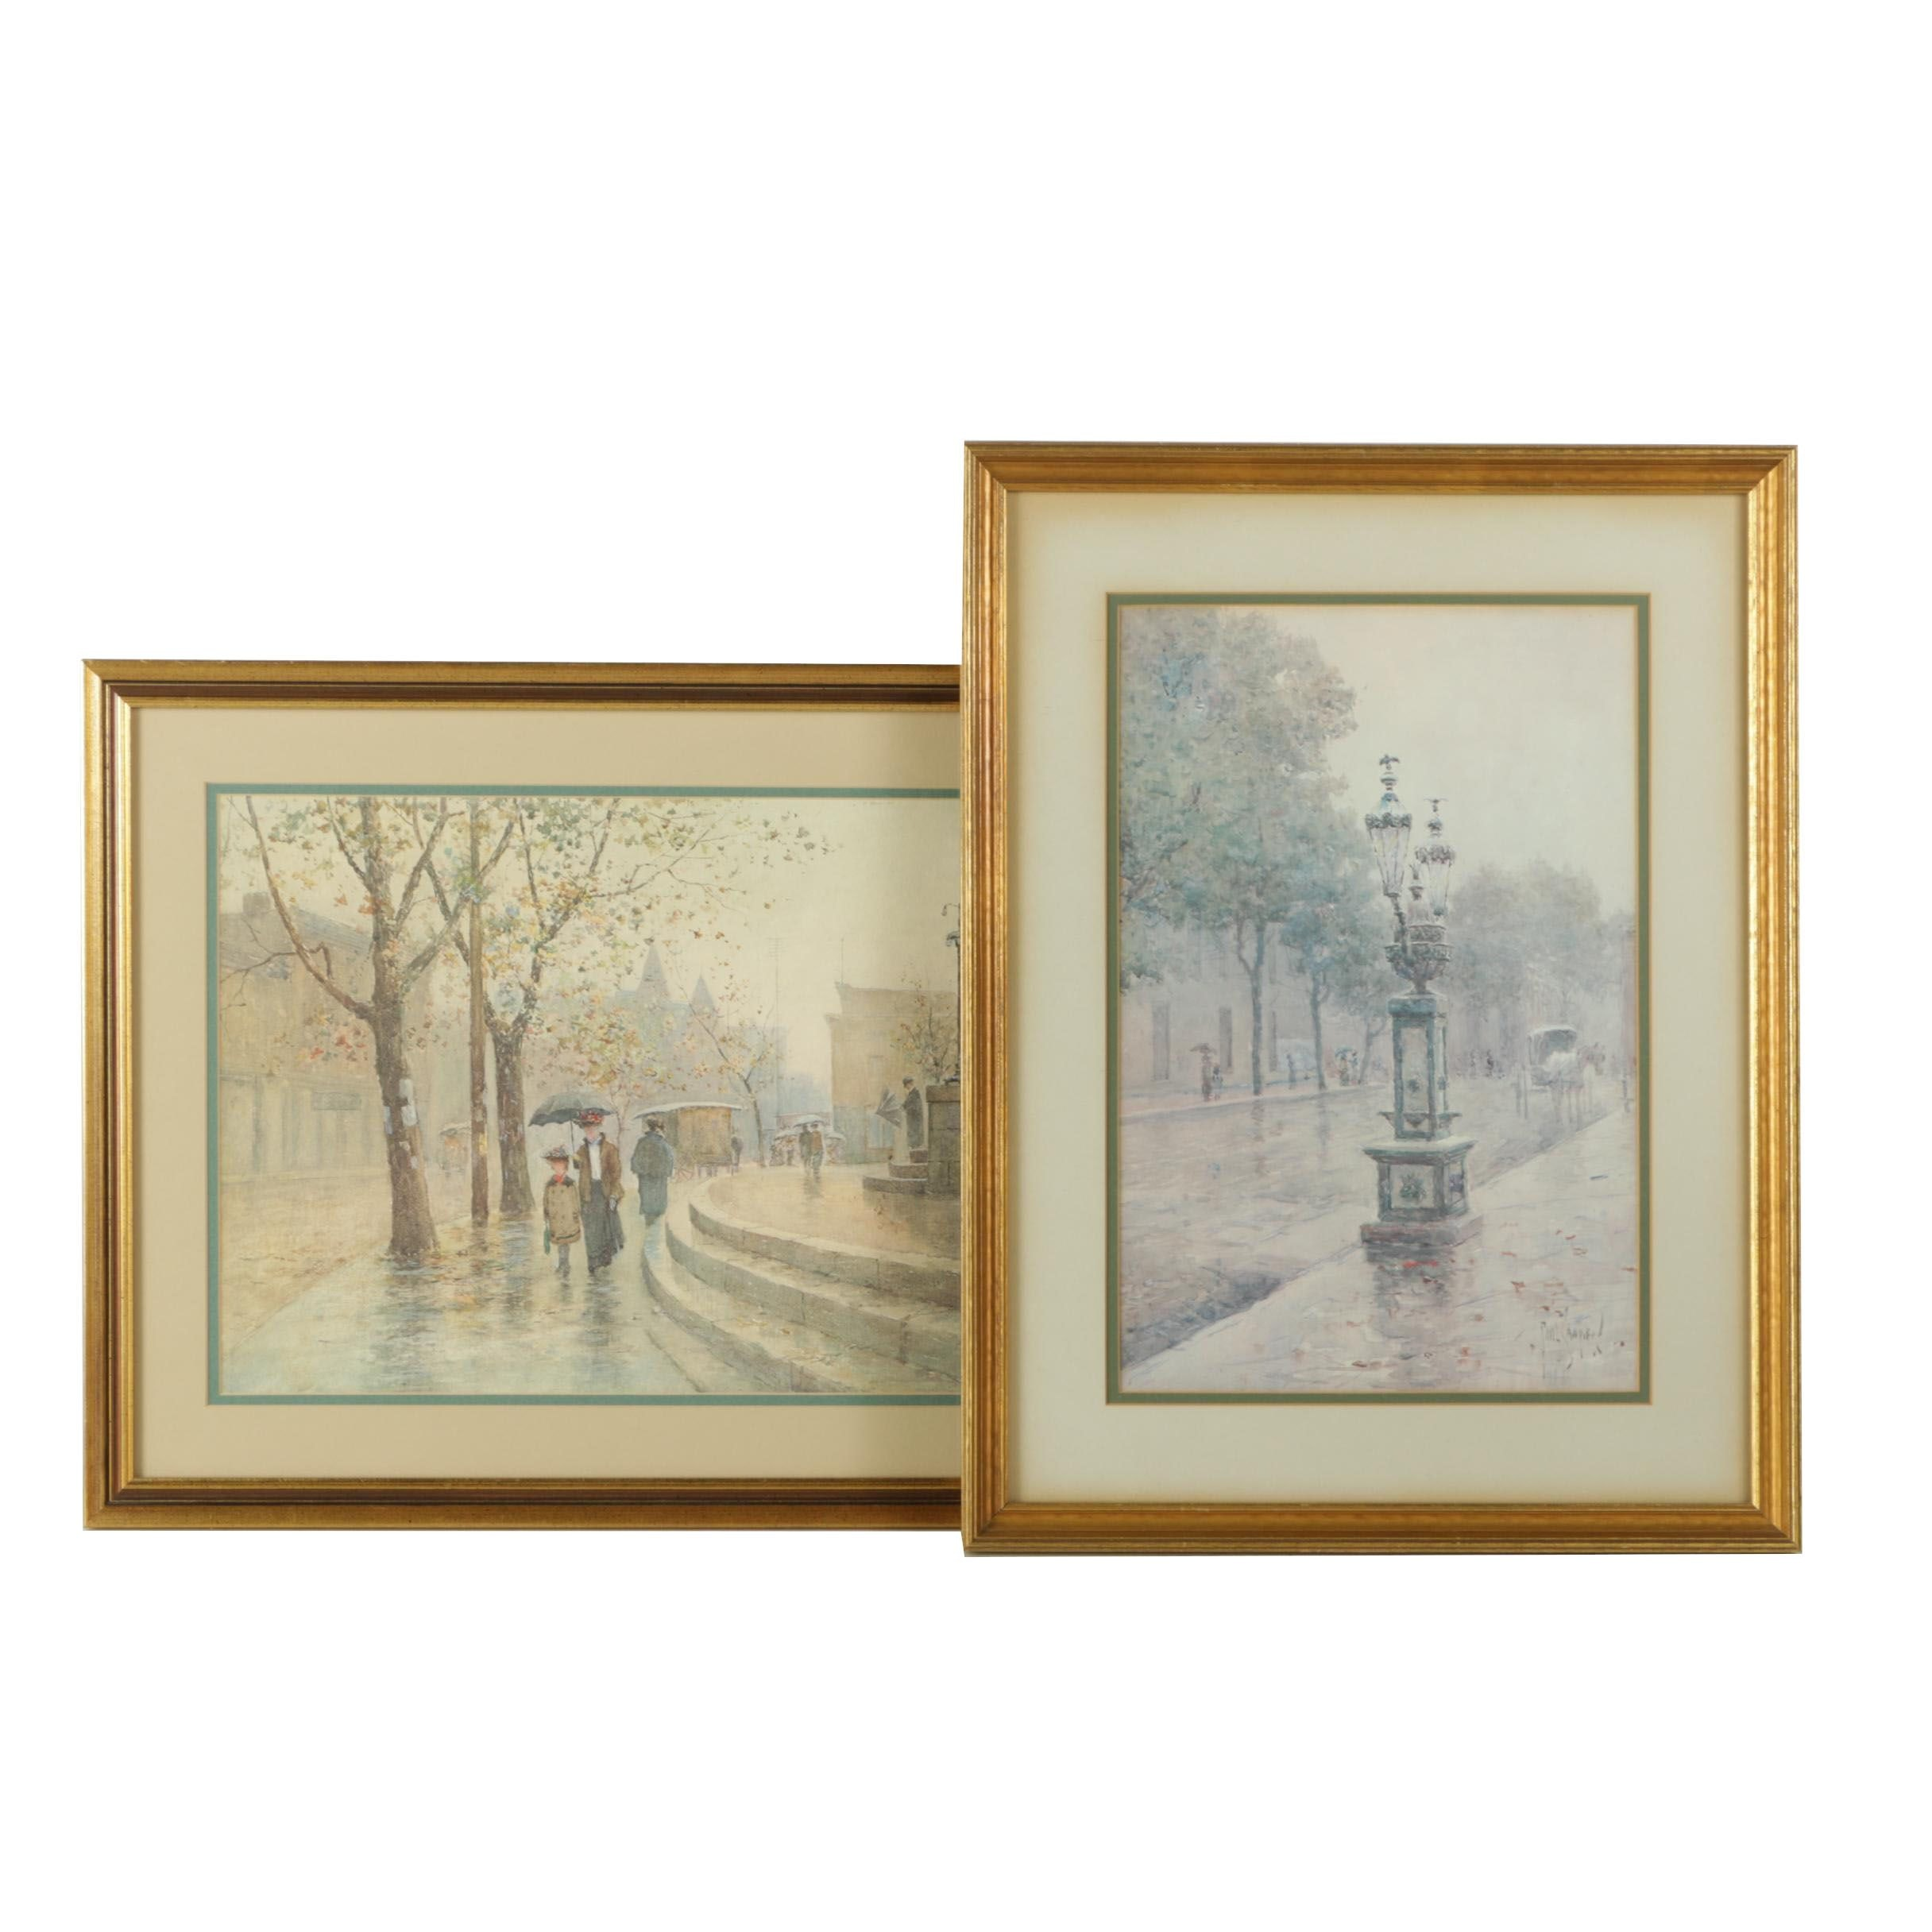 Reproduction Prints After Paul Sawyier Including a Limited Edition